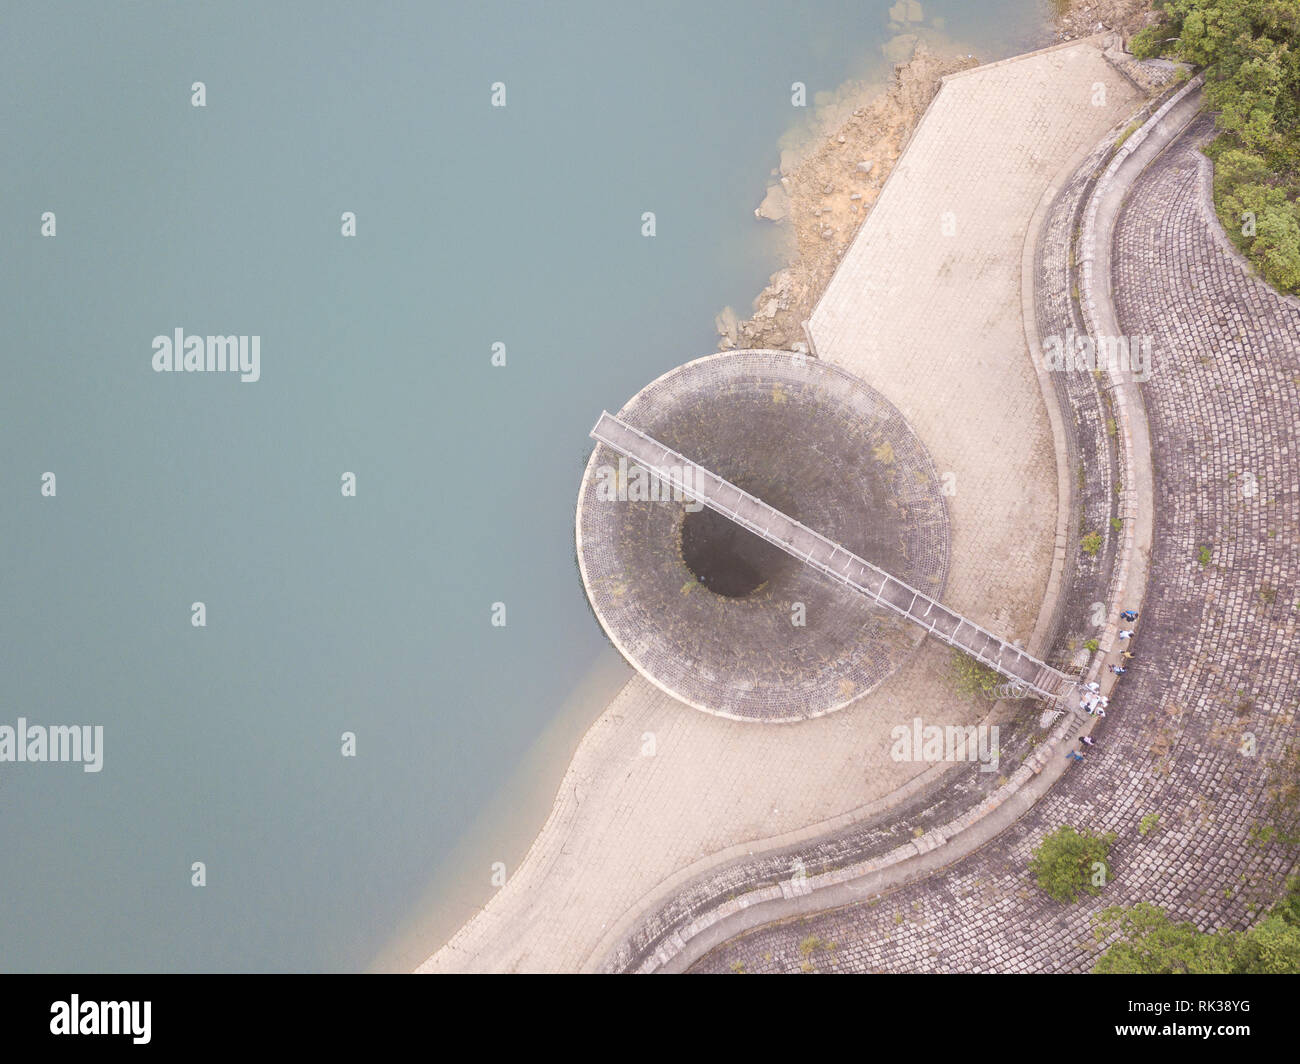 The bellmouth of the Shing Mun Reservoir in Hong Kong seen by drone - Stock Image